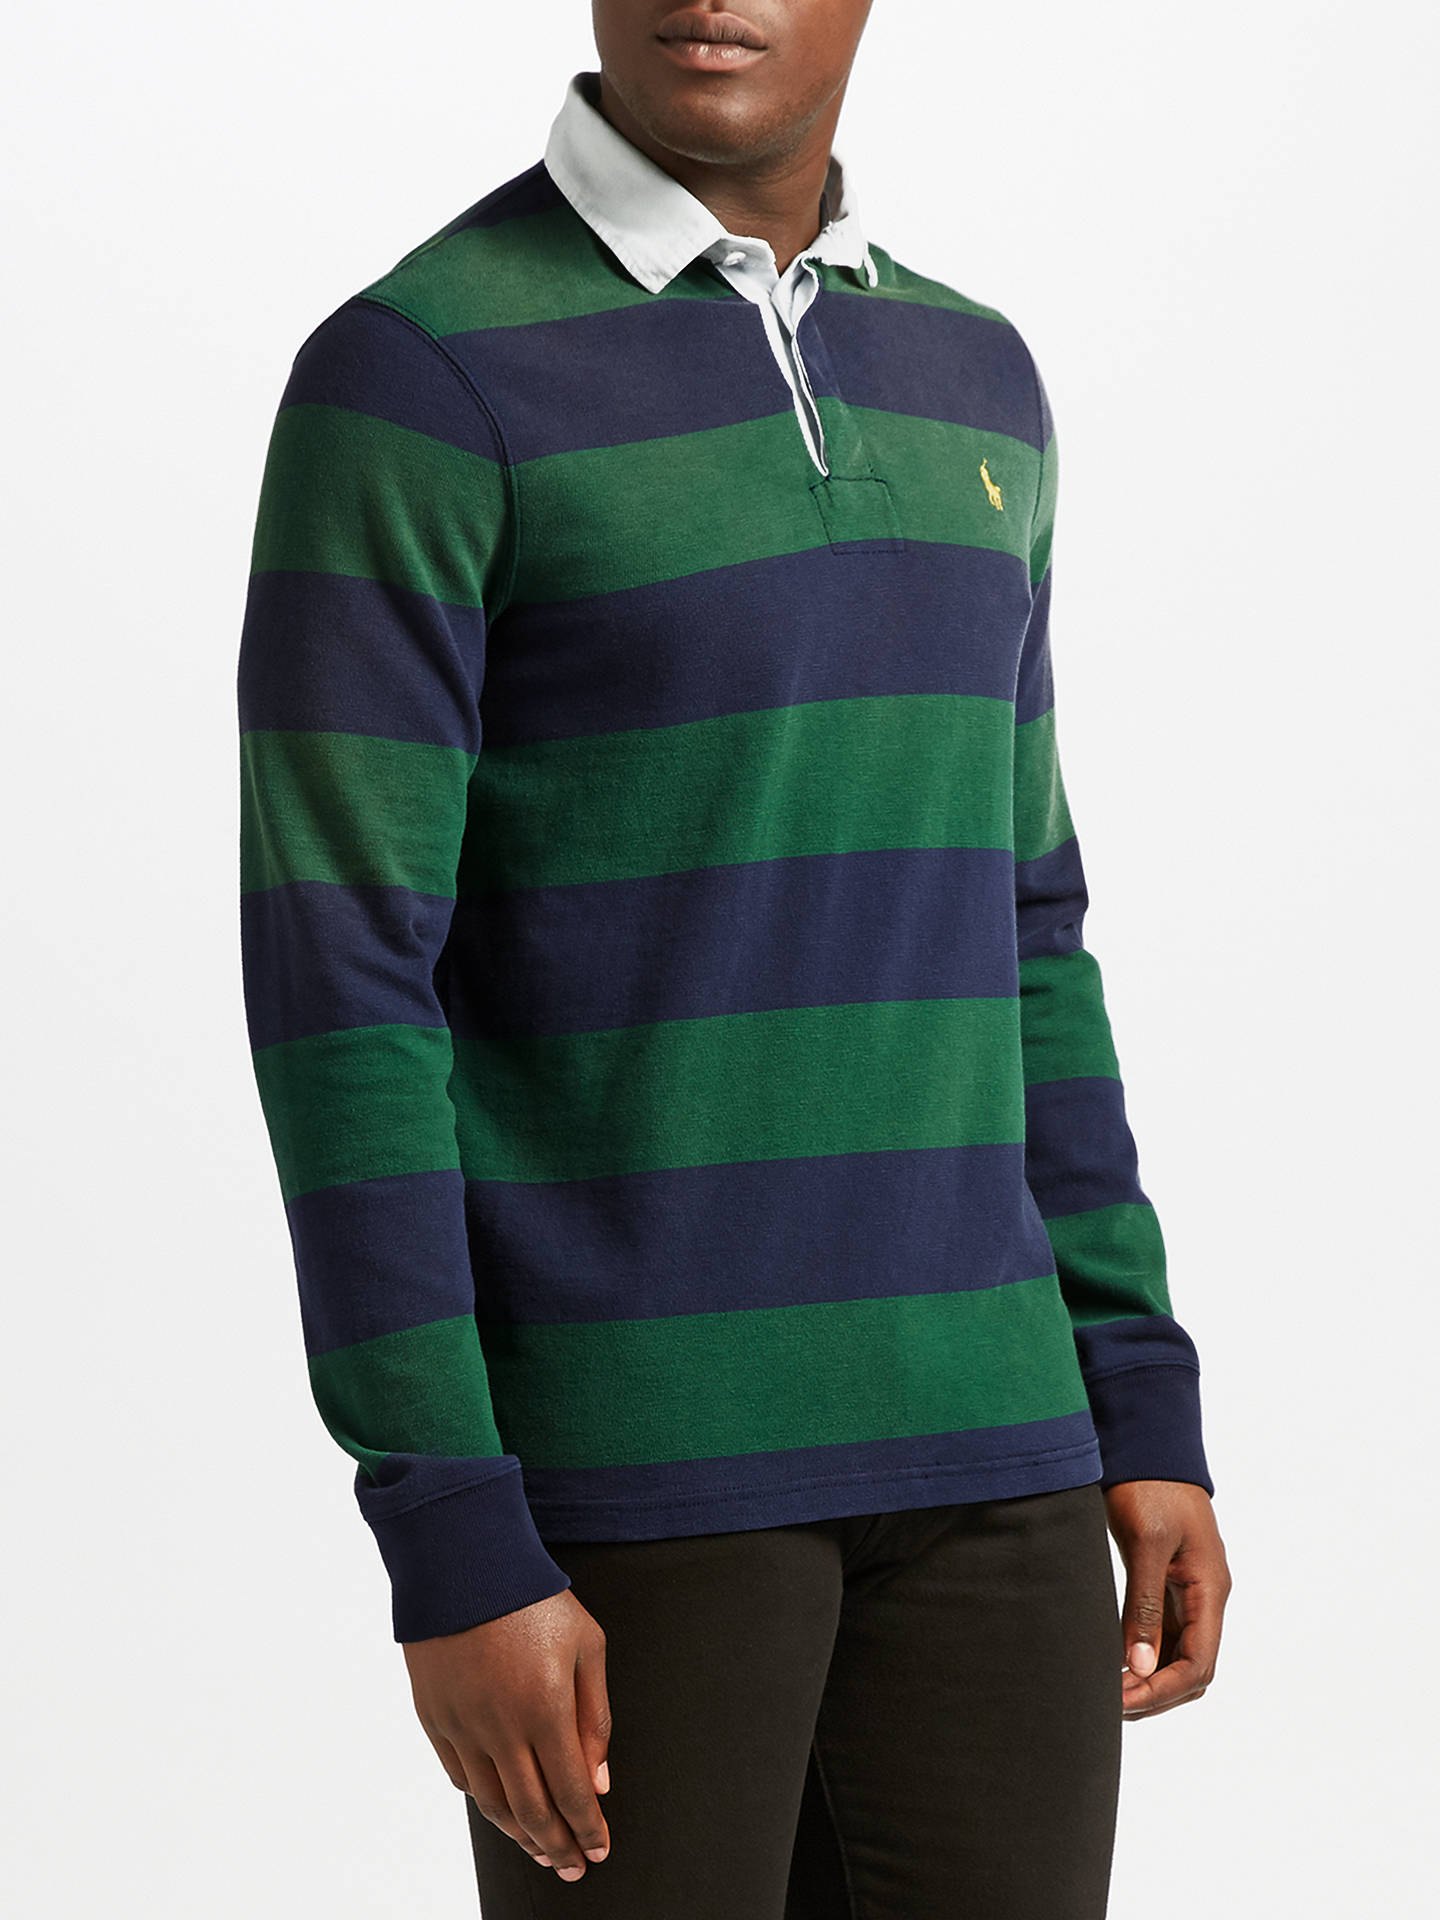 Polo Ralph Lauren Long Sleeve Rugby Knit, French NavyNew